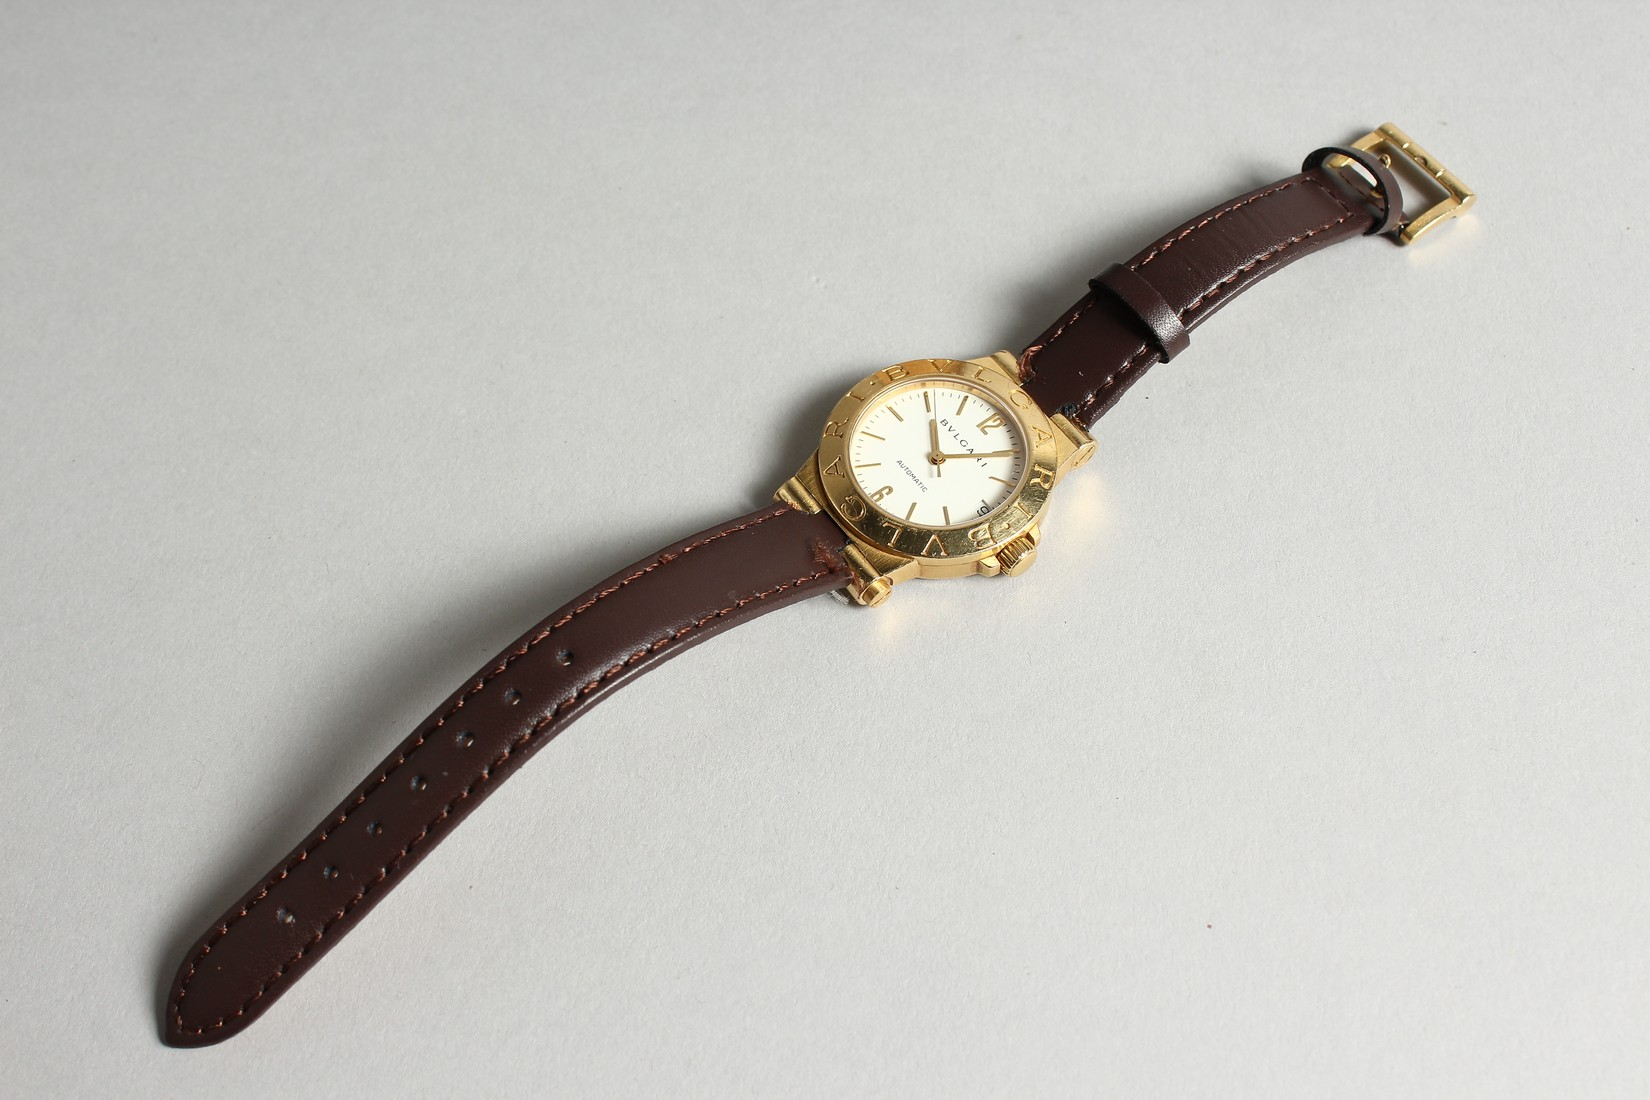 AN 18CT. GOLD BULGARI WRIST WATCH with leather strap, in original box. - Image 3 of 10